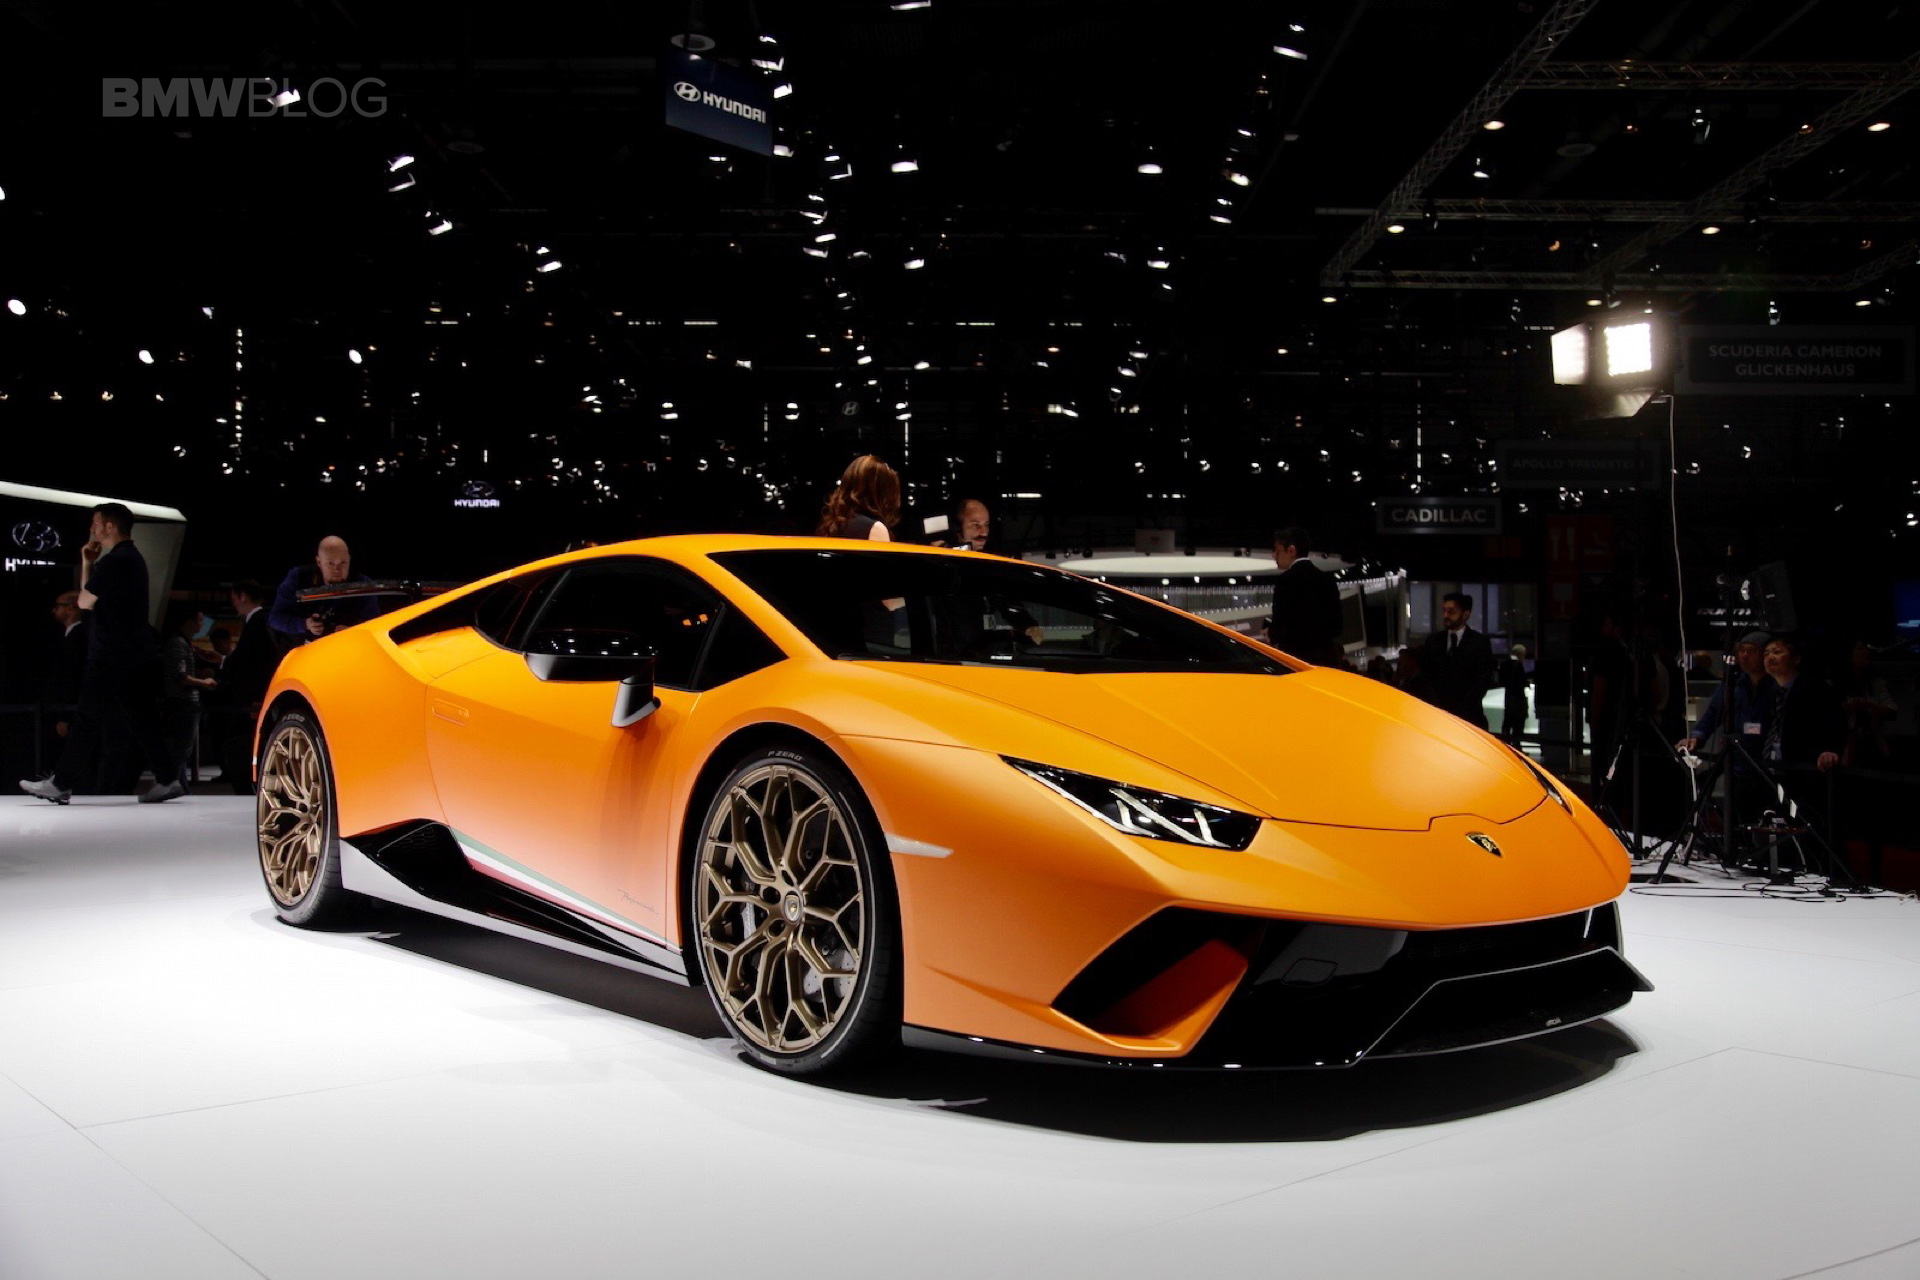 2017 Geneva Lamborghini Huracan Performante Makes A Splash